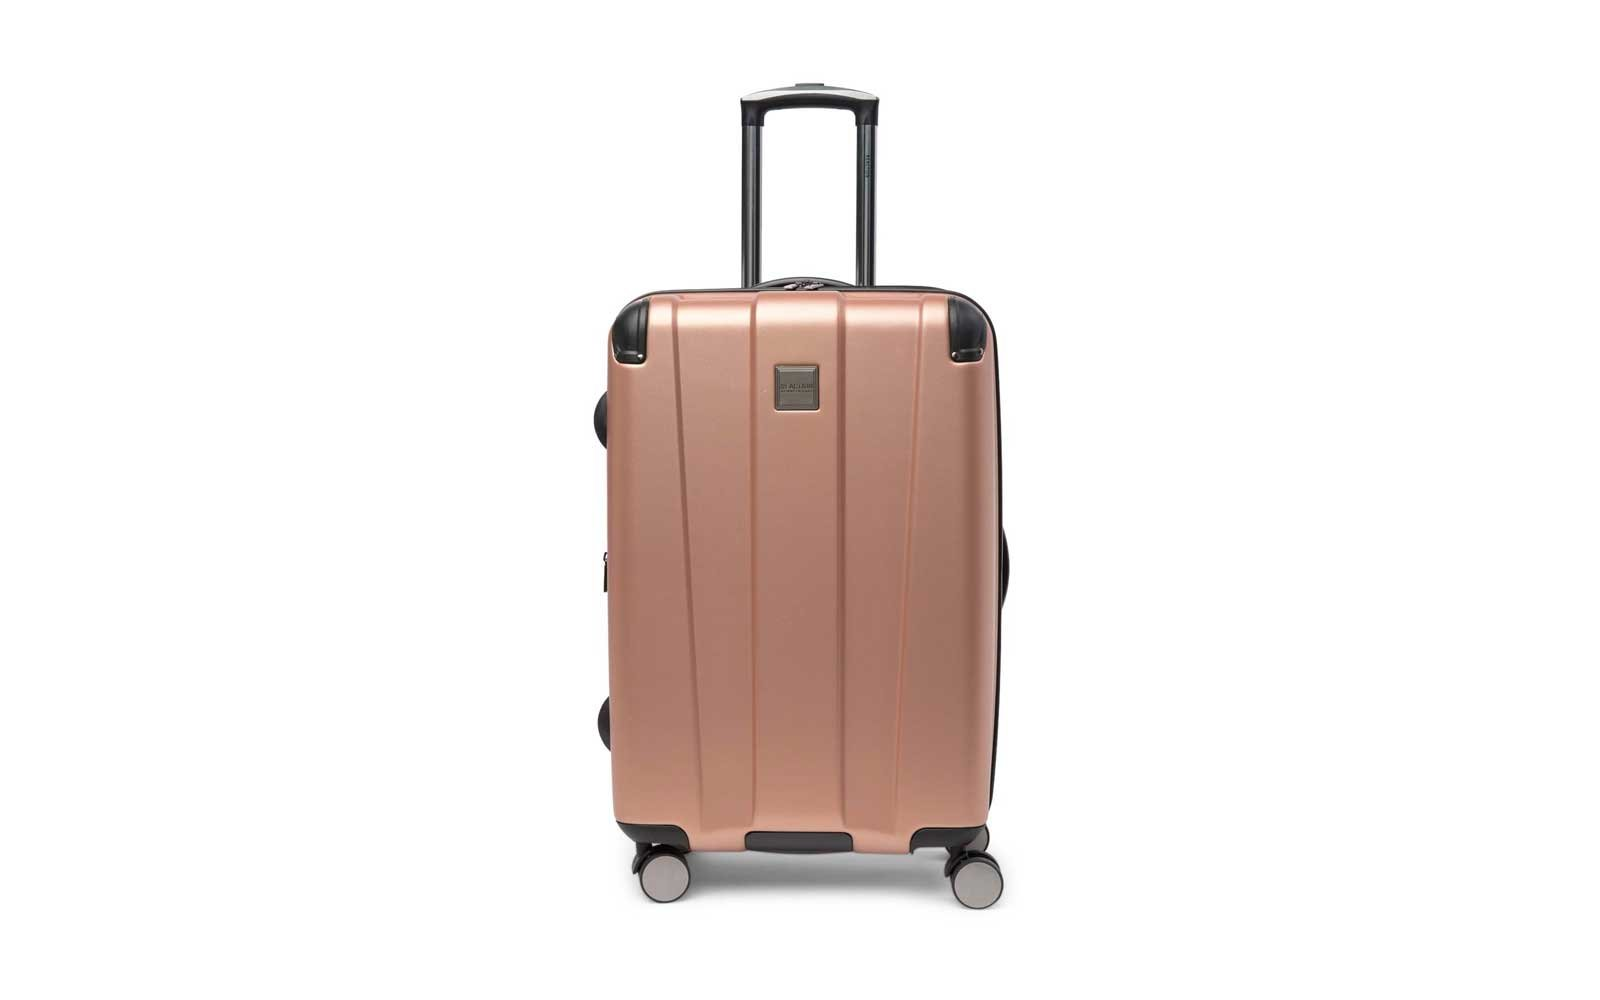 Kenneth Cole Reaction Continuum 24-inch Spinner Luggage